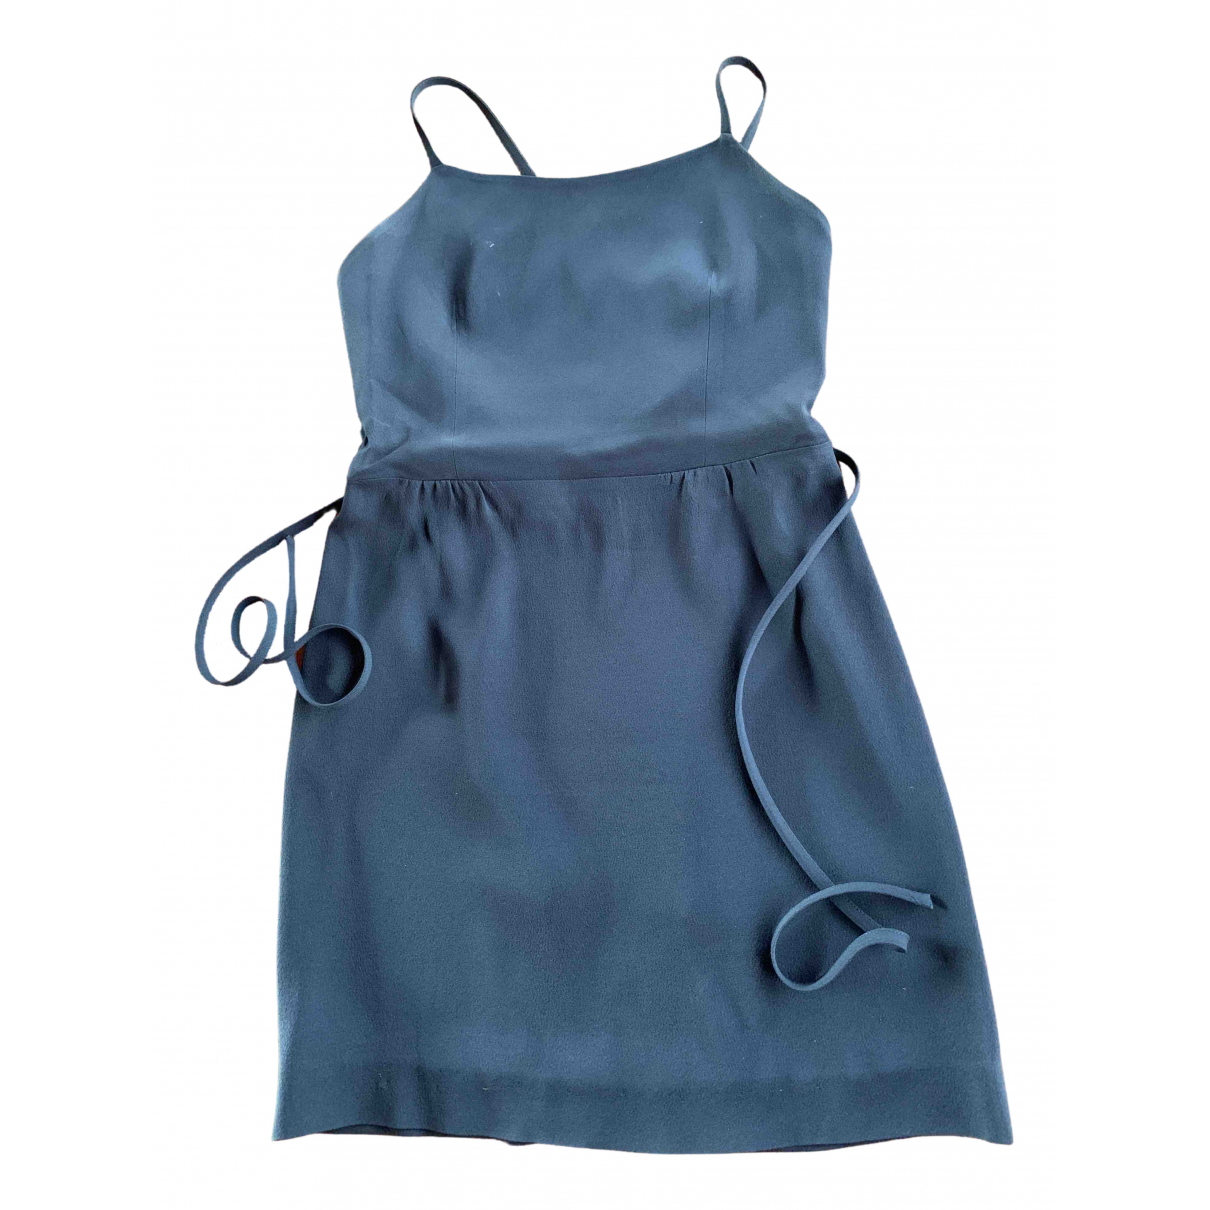 Moschino Cheap And Chic \N Kleid in  Blau Polyester